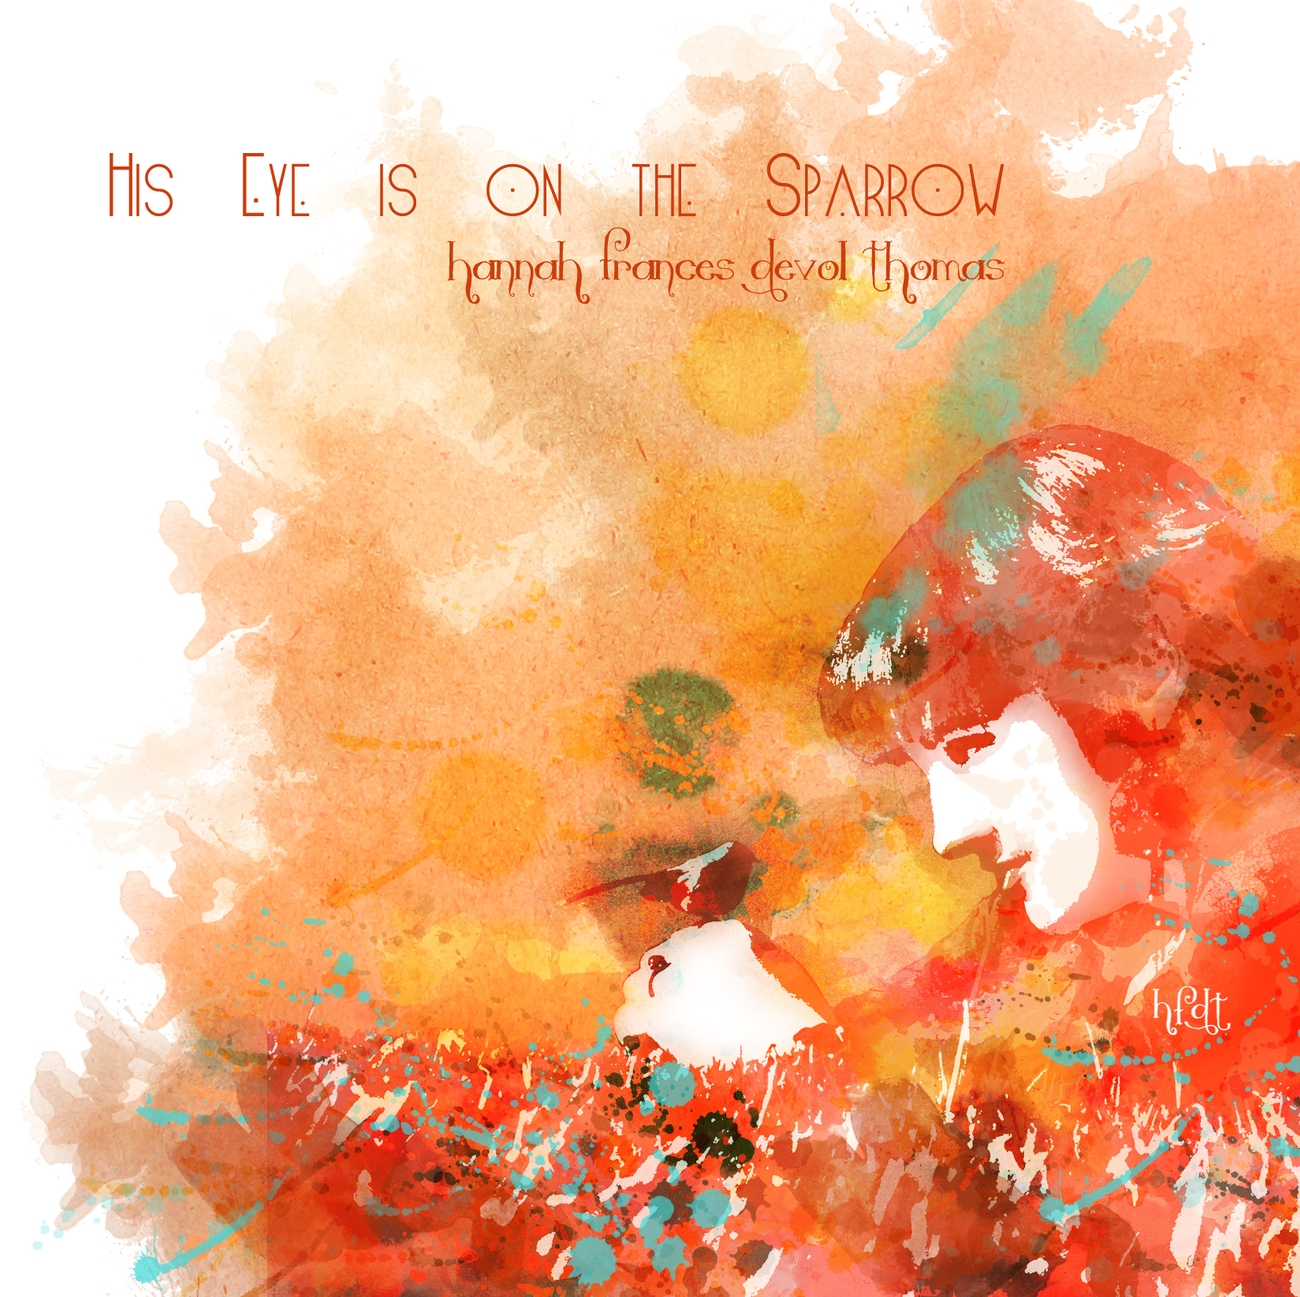 Album: His Eye is on the Sparrow